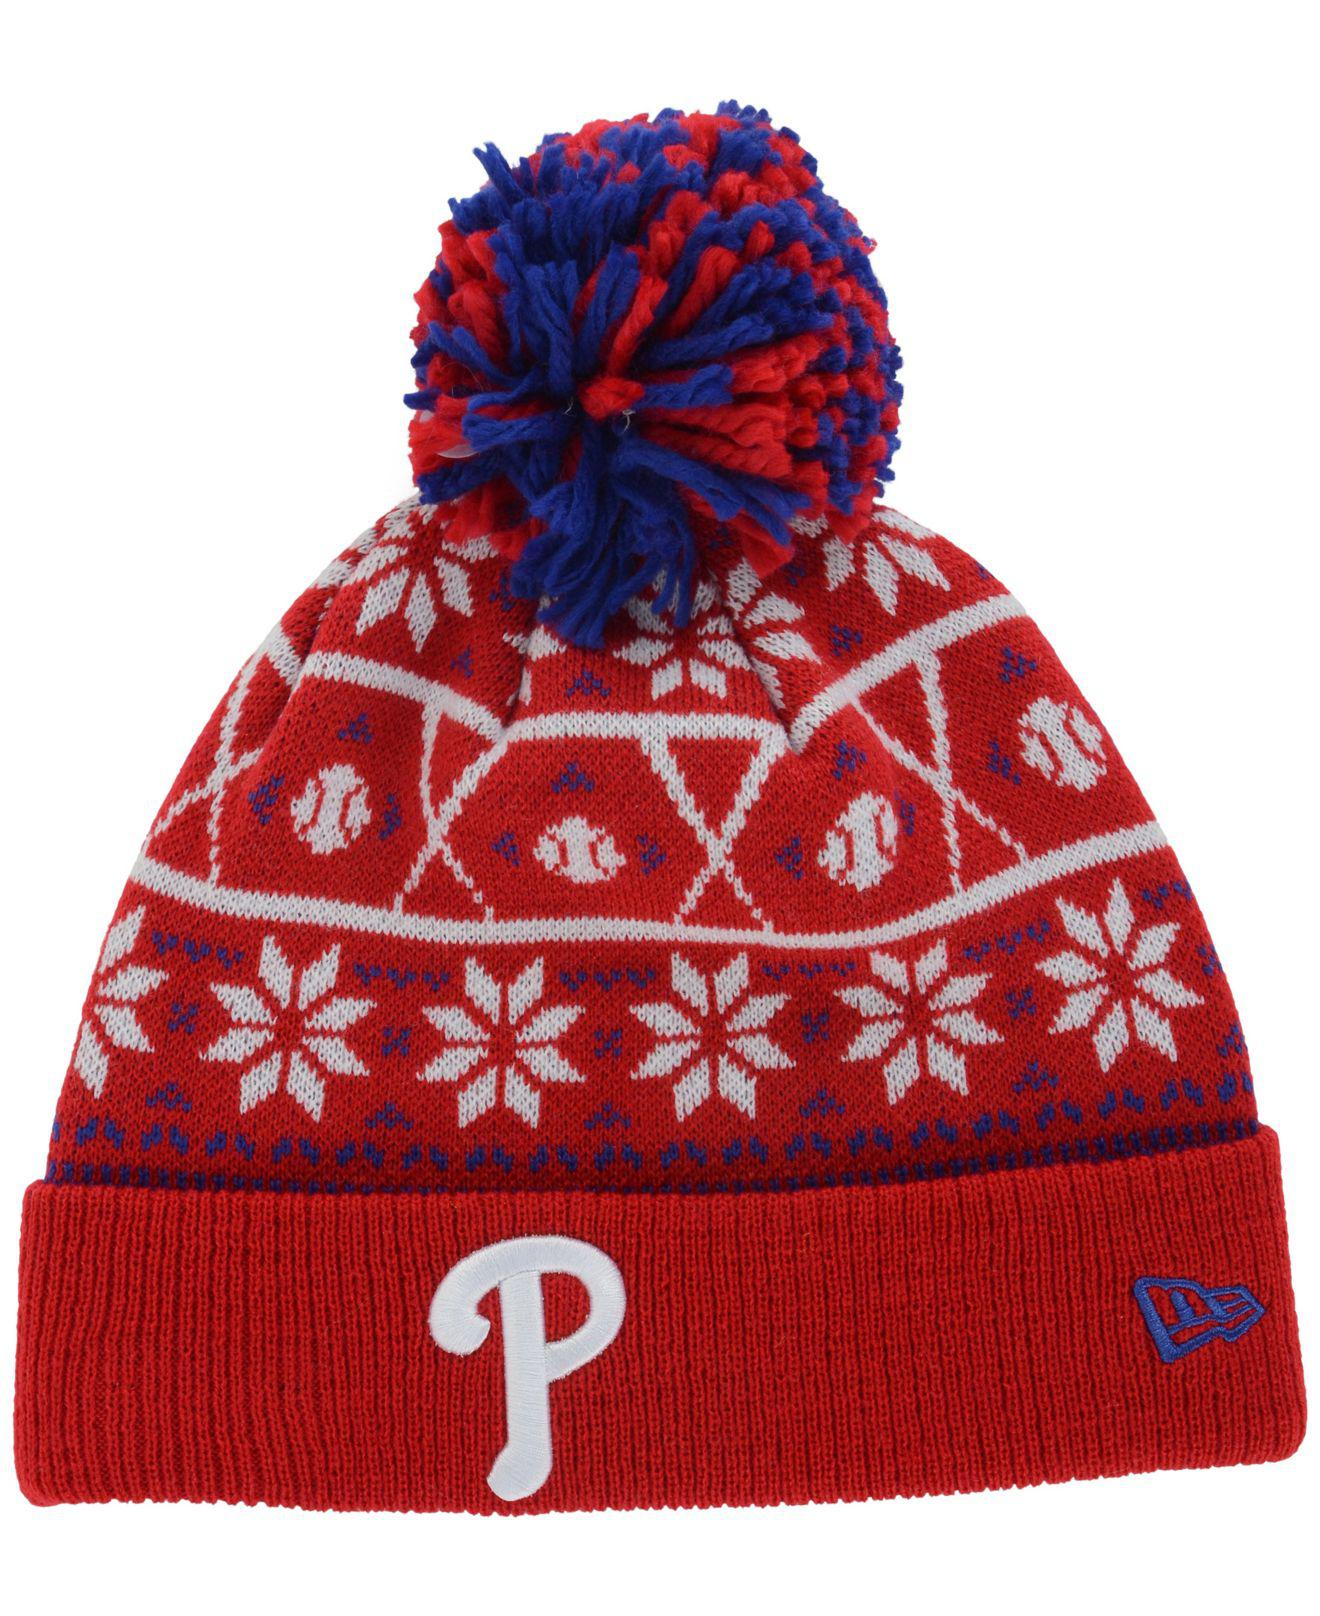 c1d3360a1 Lyst - KTZ Philadelphia Phillies Sweater Chill Pom Knit Hat in Red ...